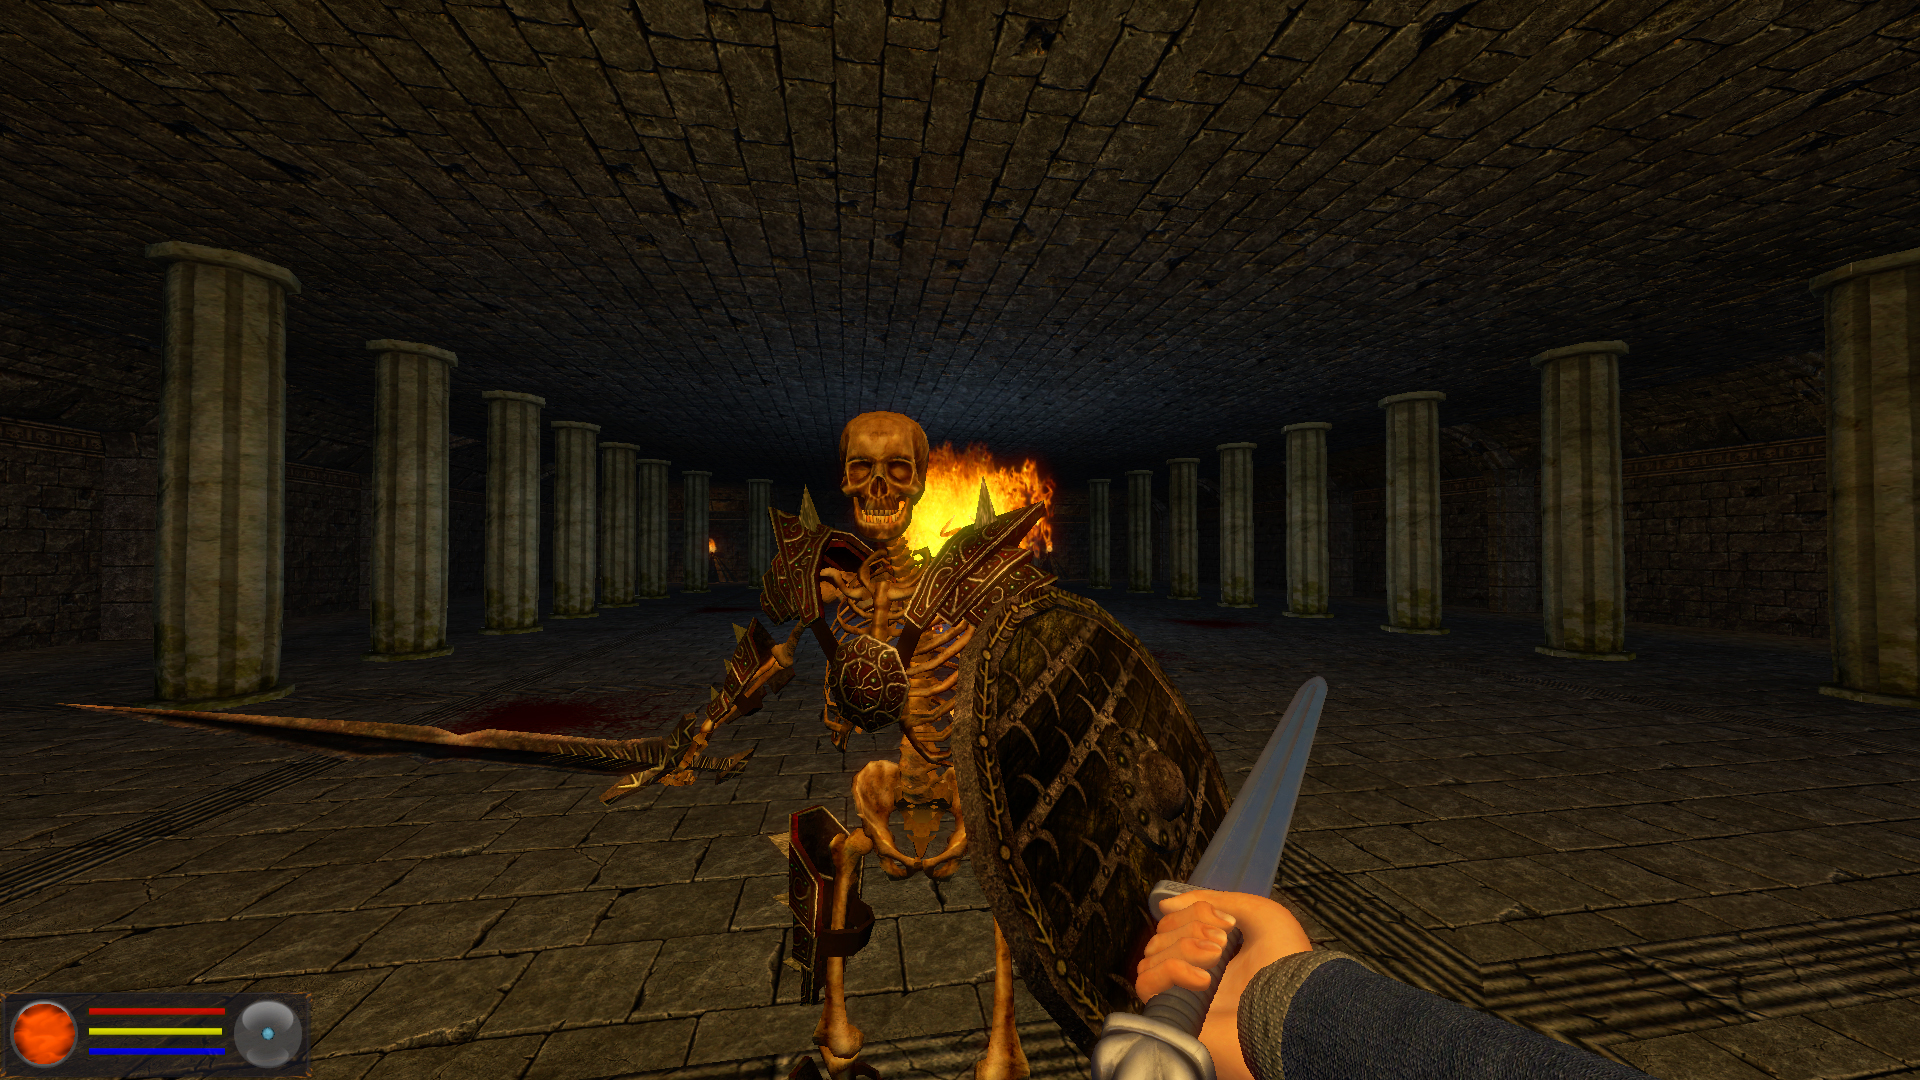 castle-torgeath-descent-into-darkness-screenshot-2